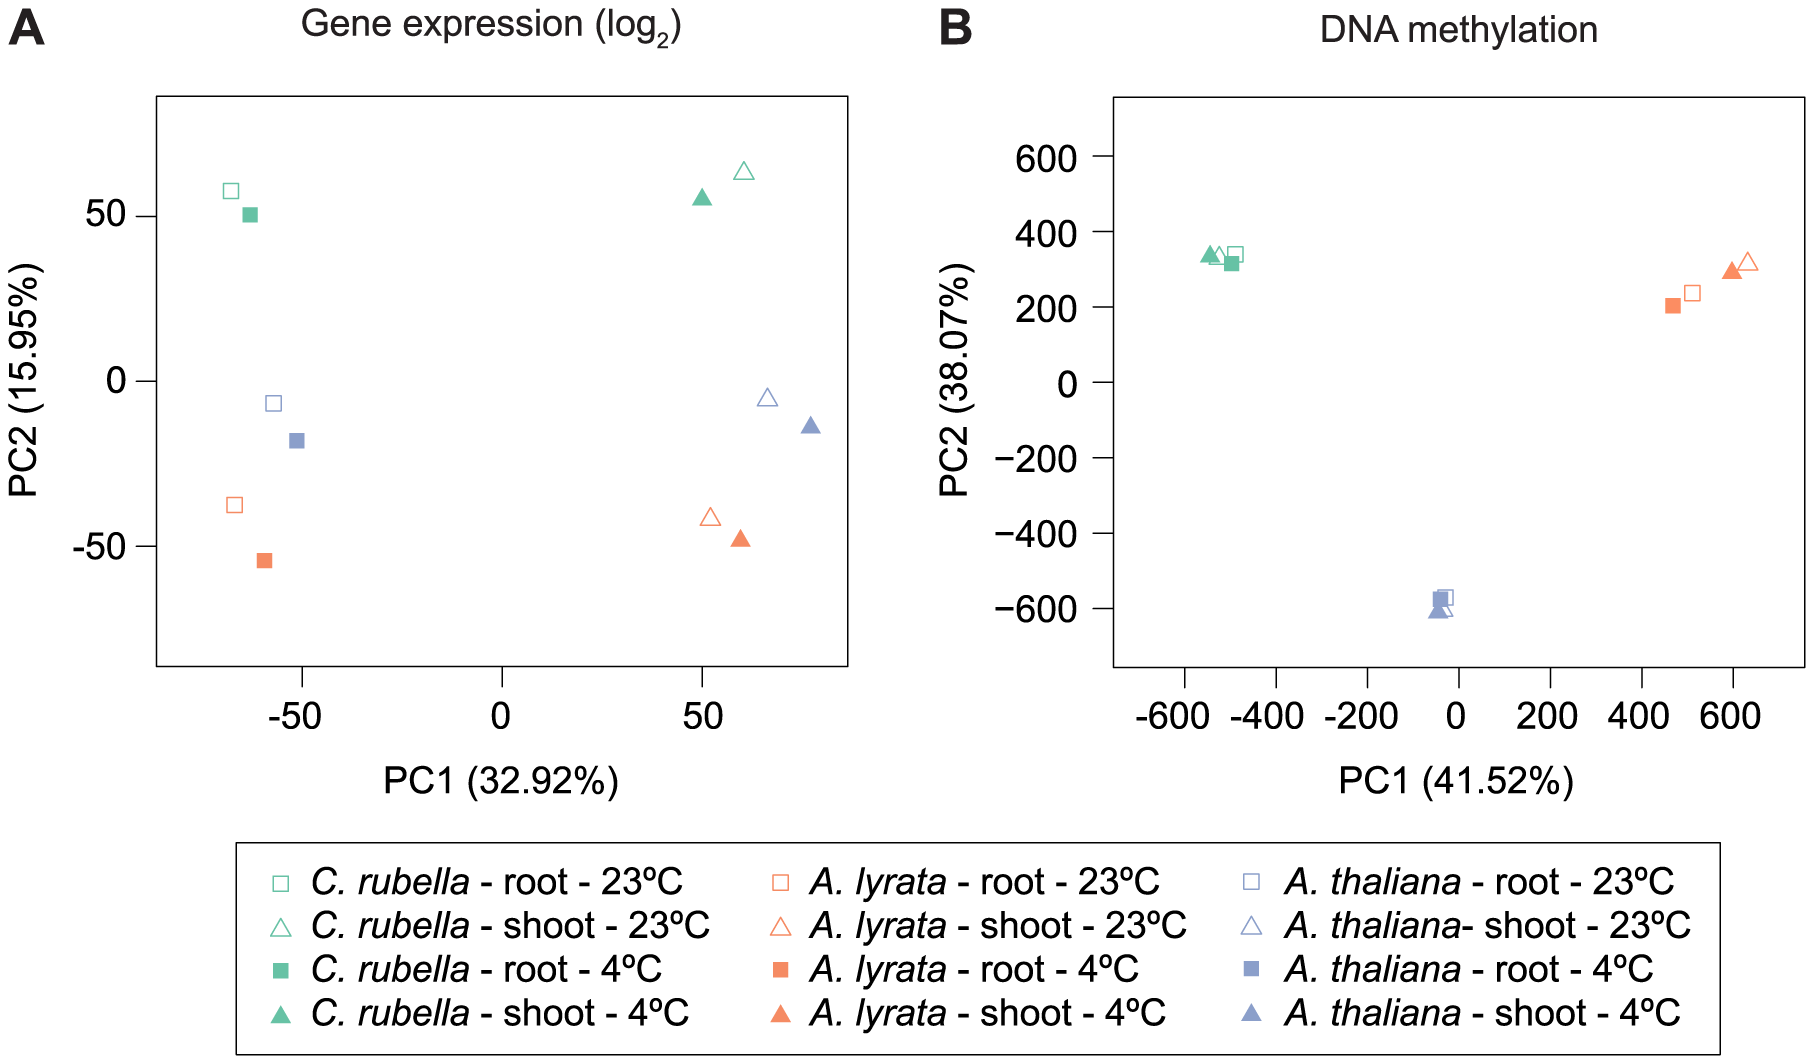 Species gene expression and mC relationships.